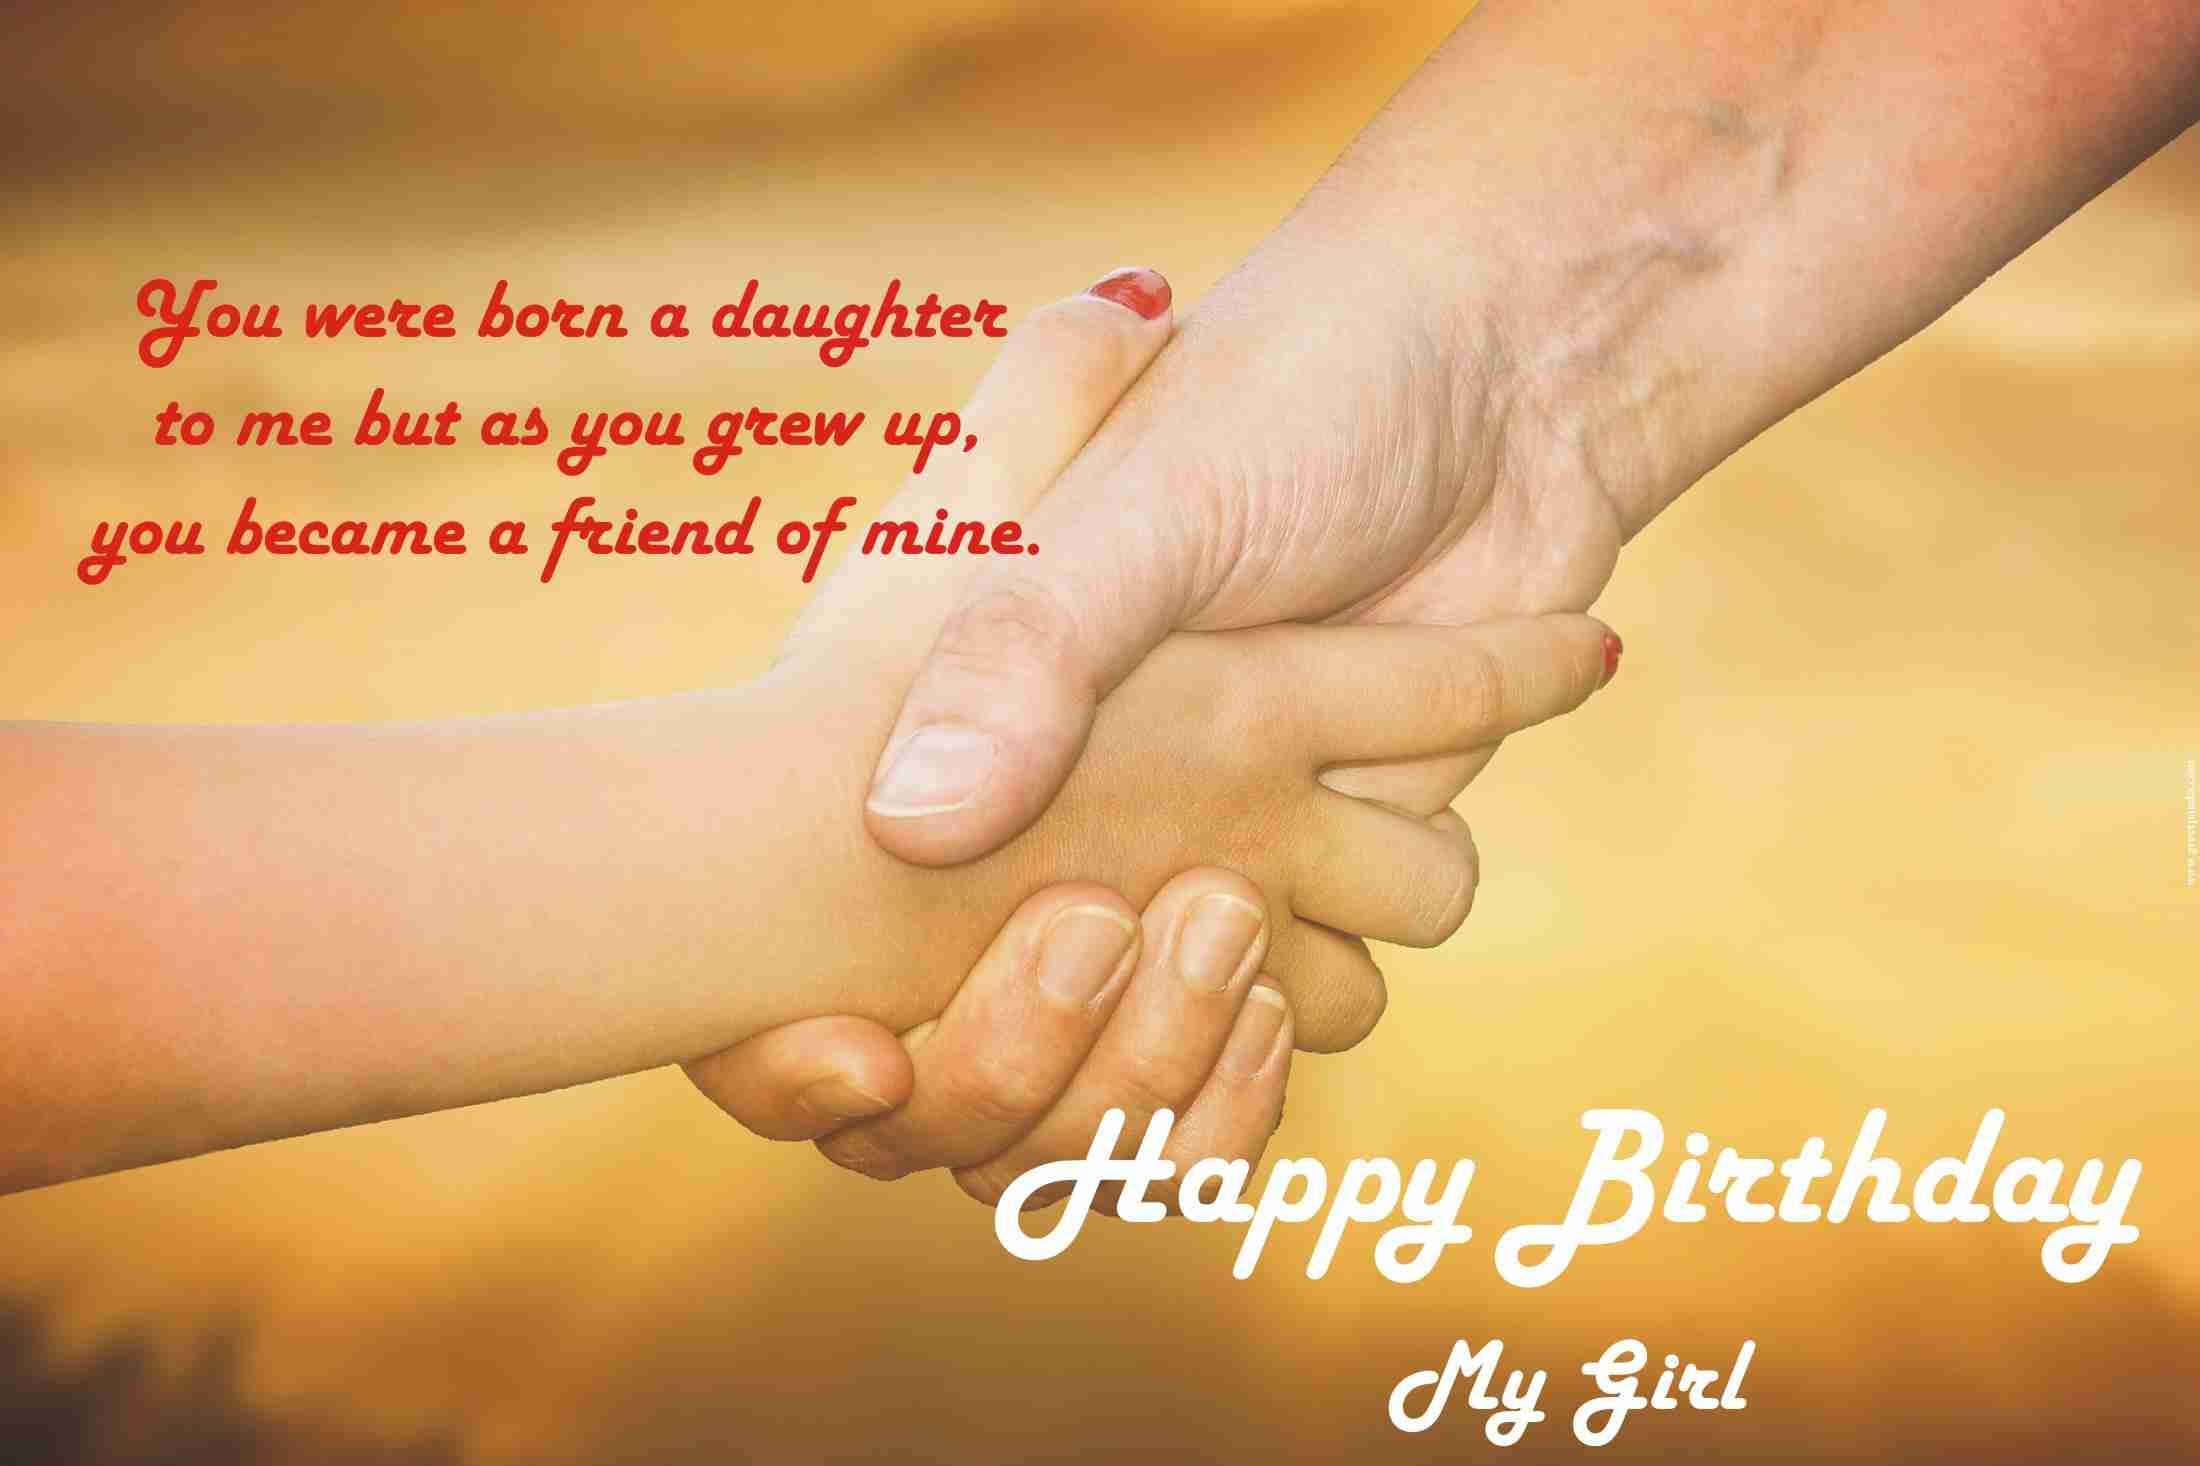 Funny Happy Birthday Wishes For Daughter From Mom